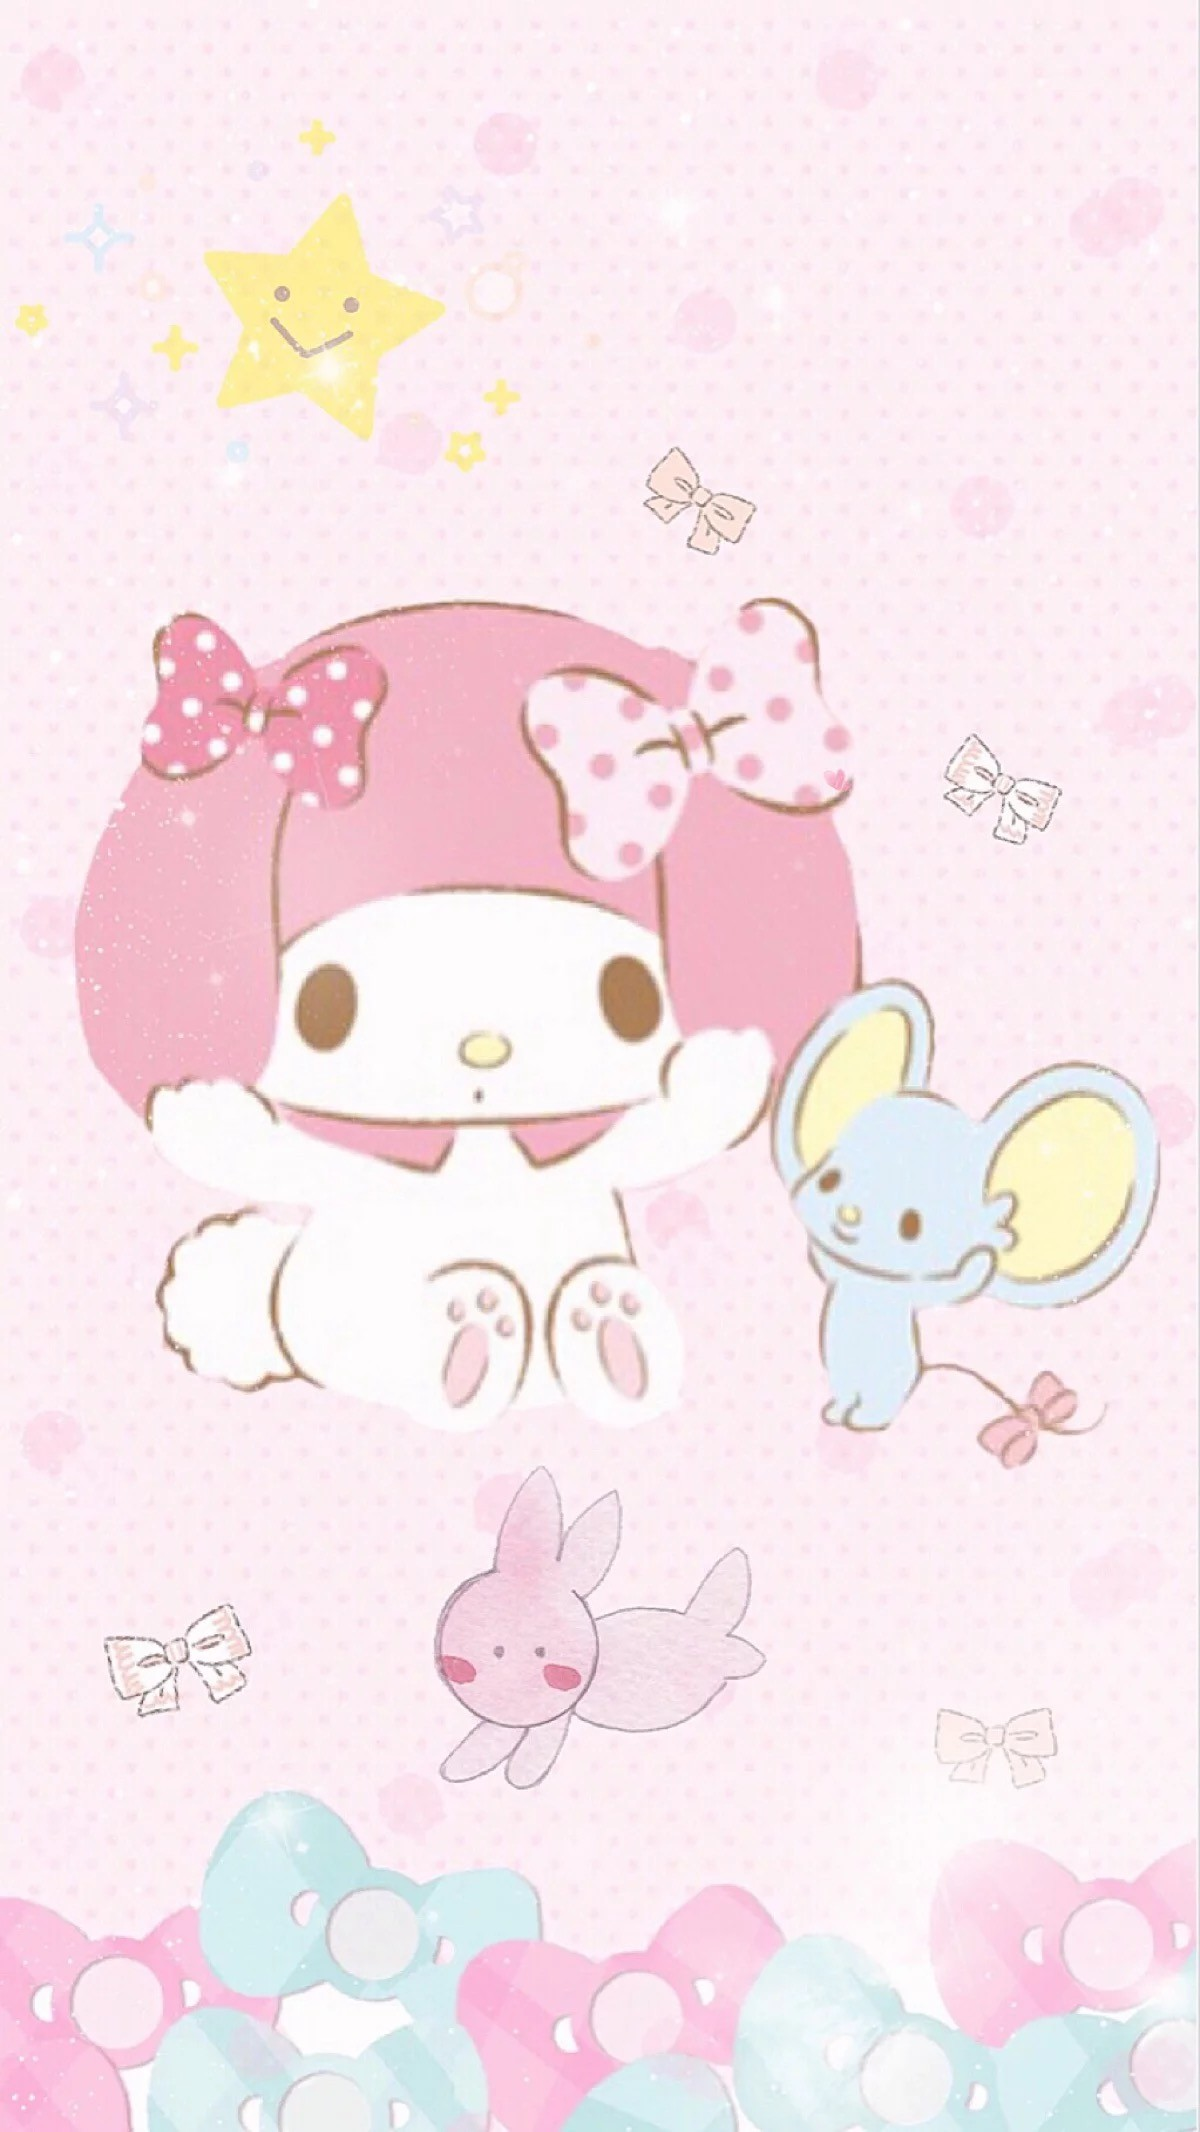 My Melody Wallpaper for iPhone (76+ images)